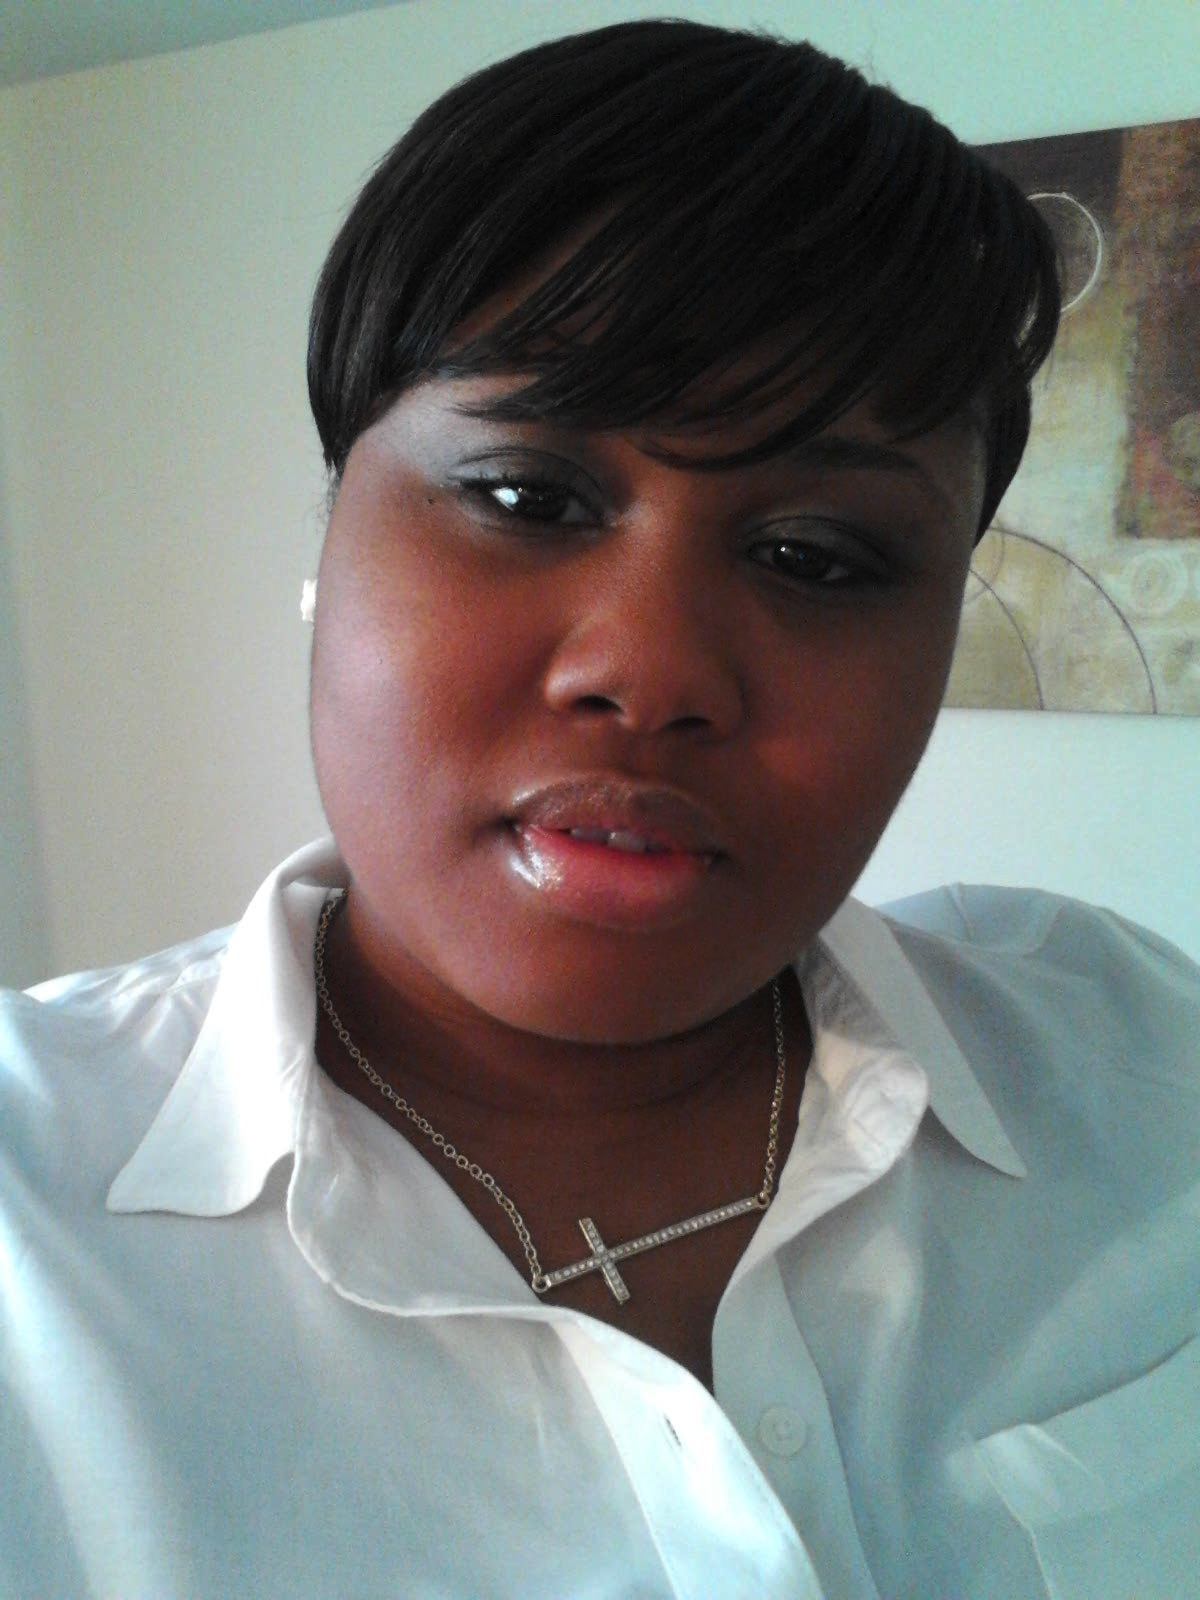 cds monarch  alexis bell has been a support specialist for the community habilitation program since 2008 throughout her years she has worked many different